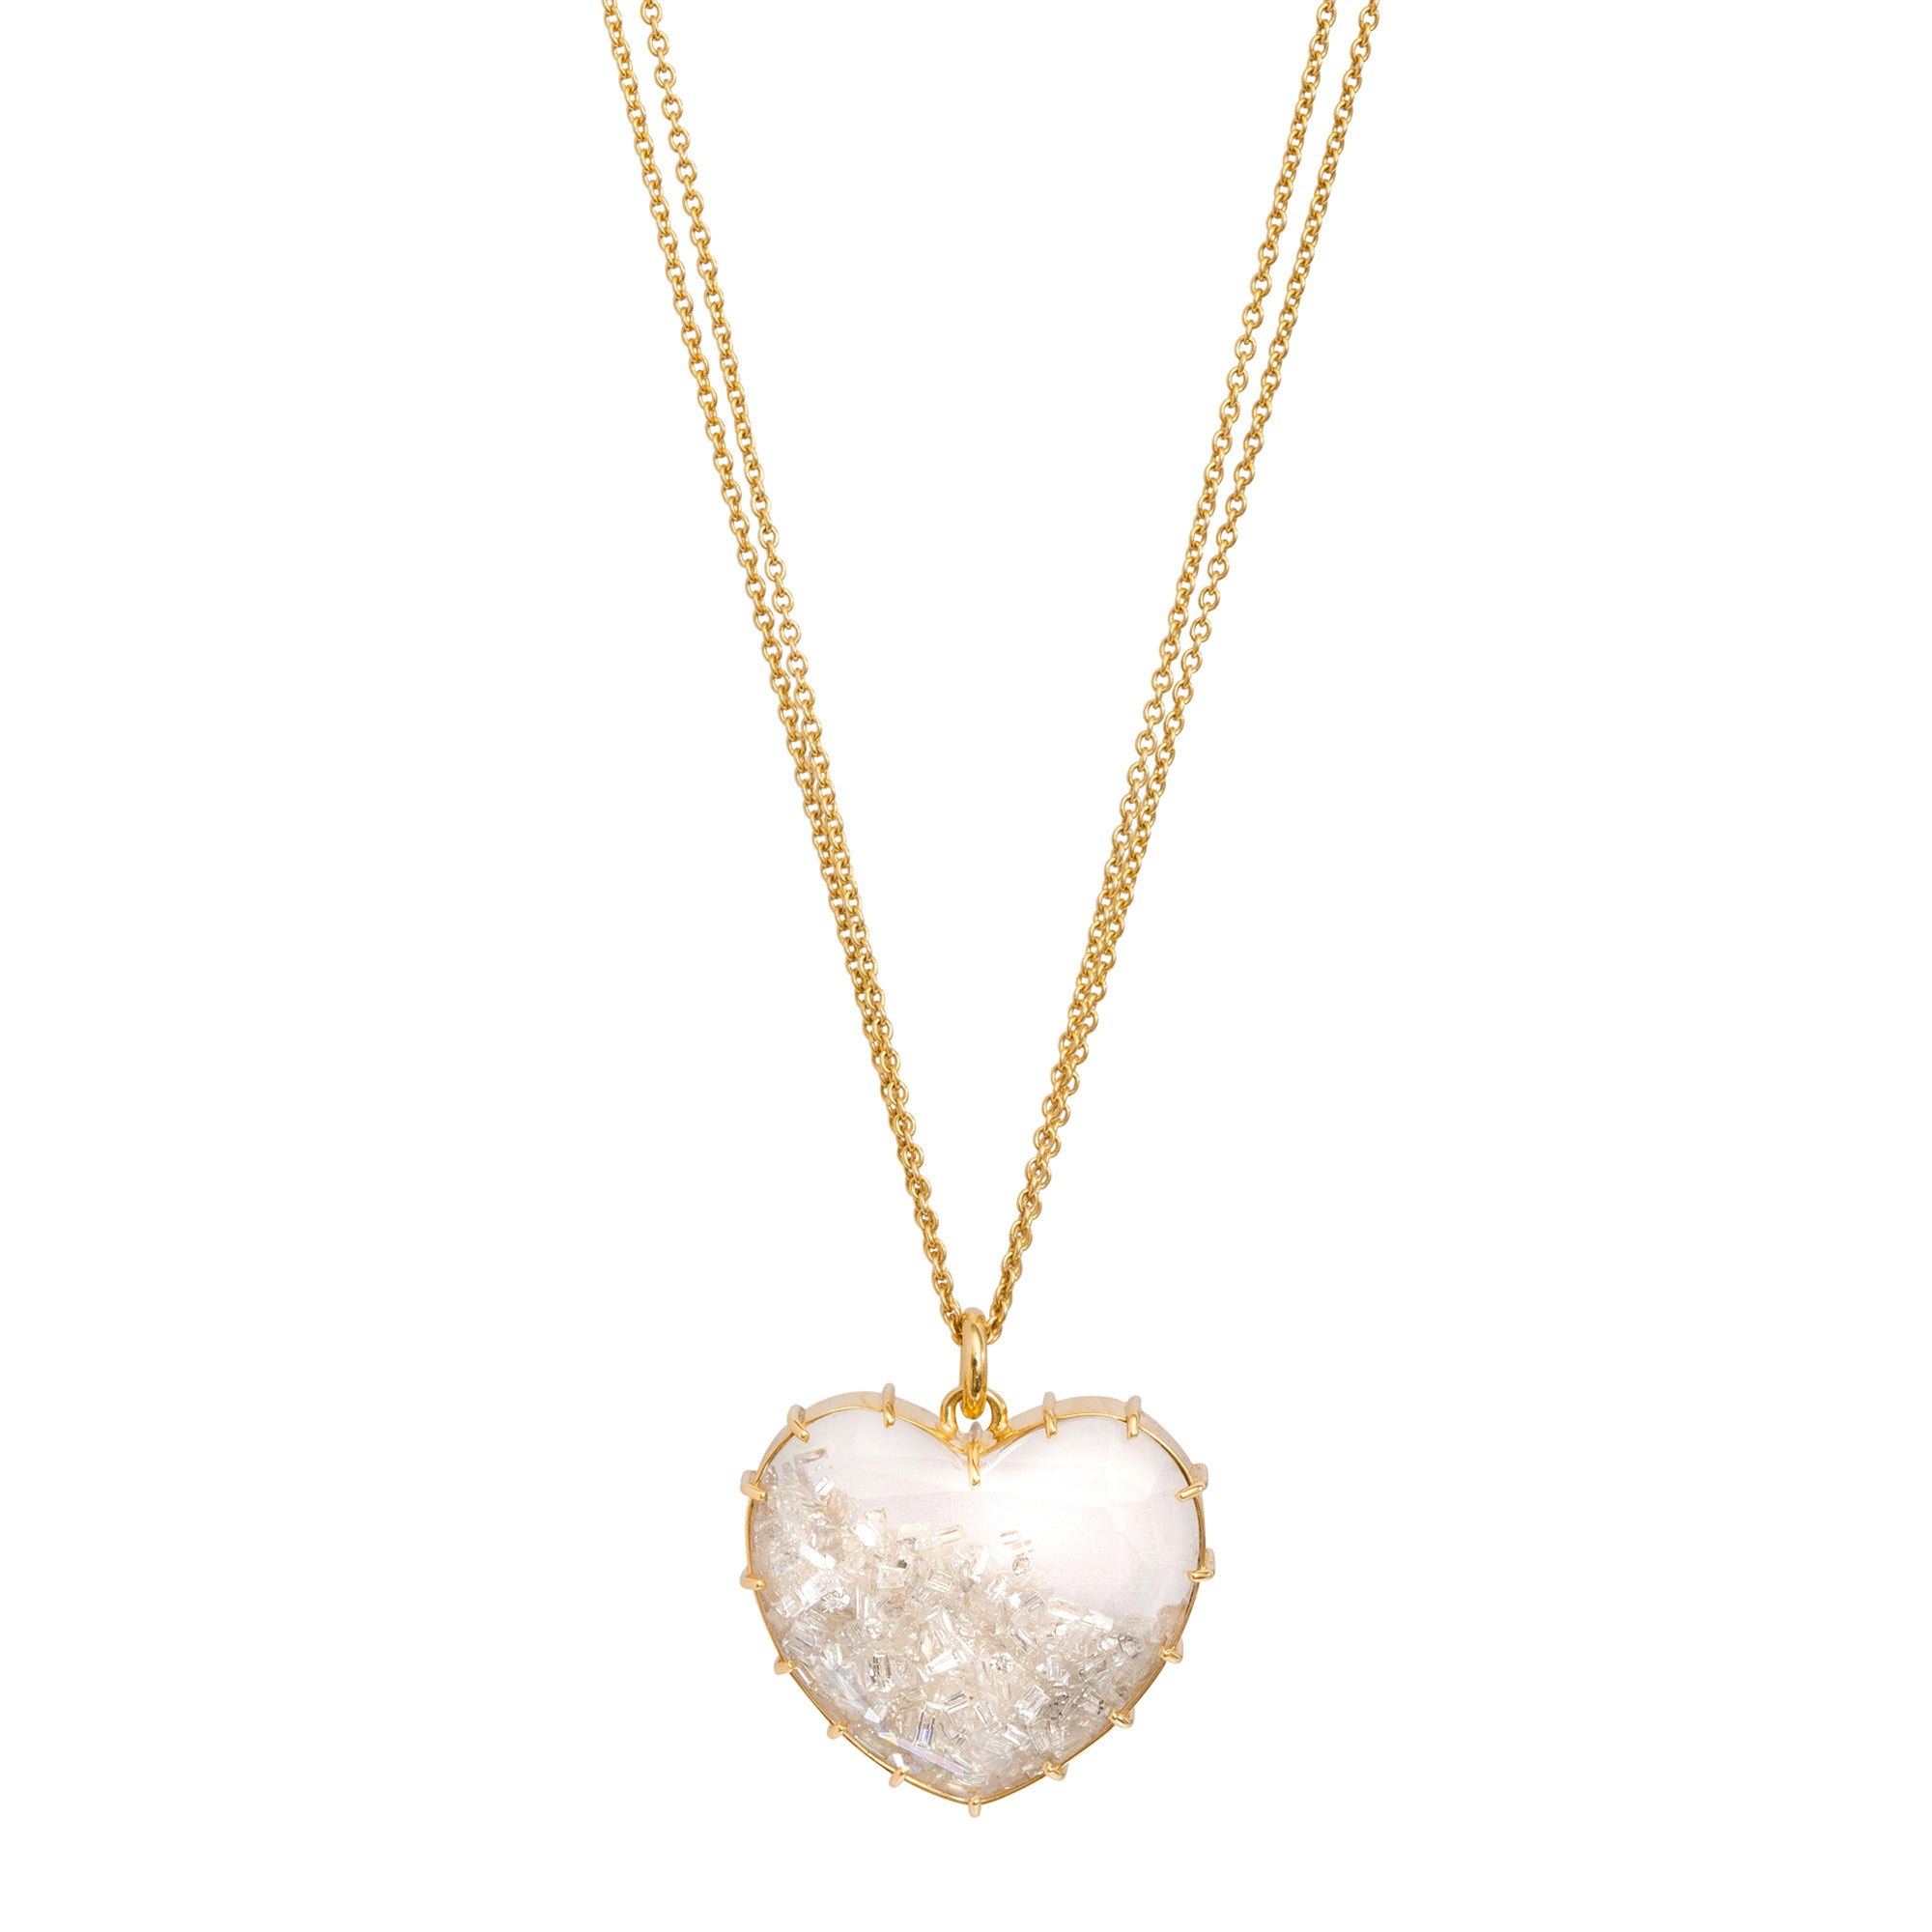 Heart Shake Necklace by Renee Lewis for Broken English Jewelry